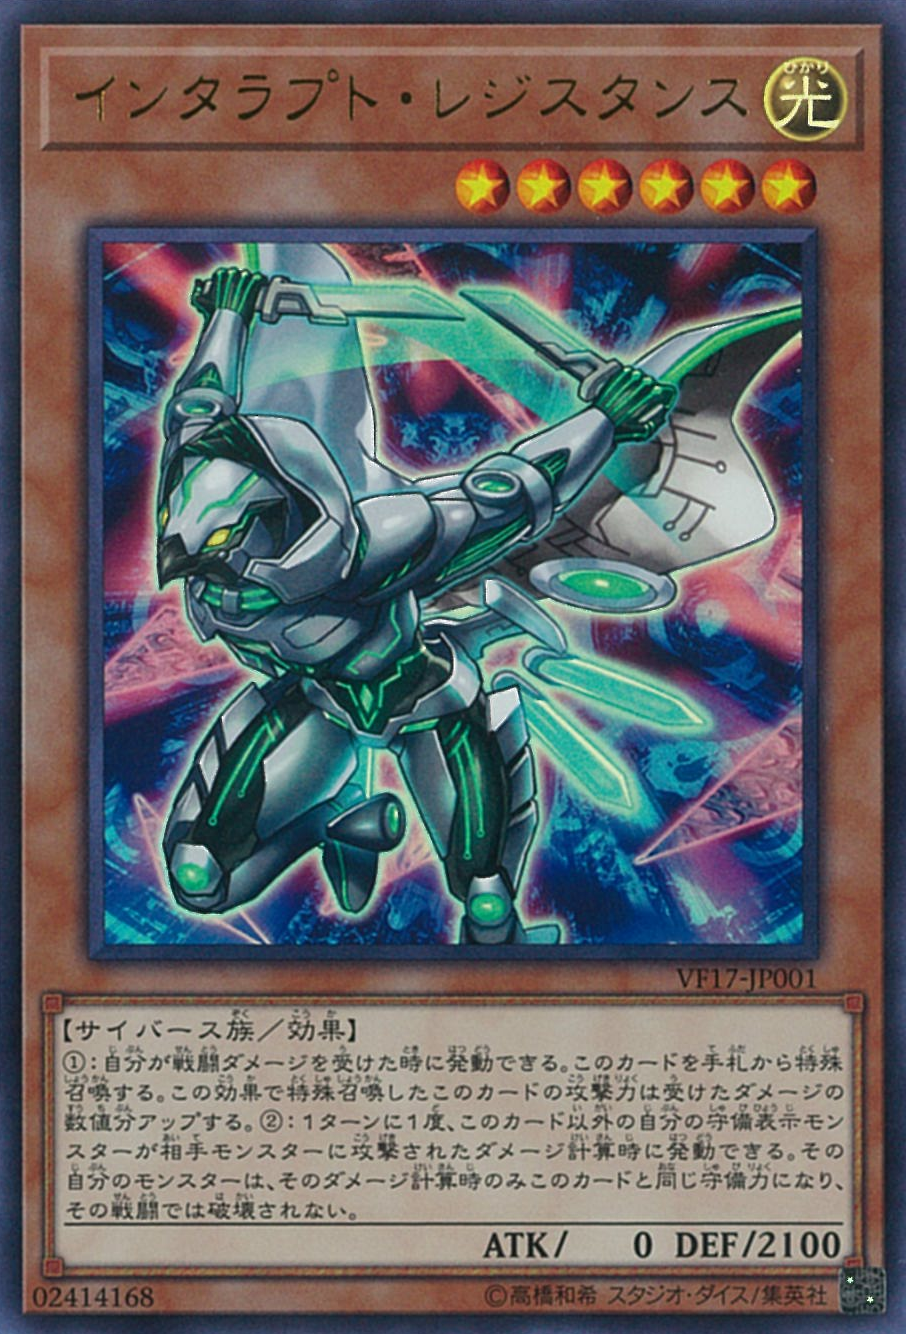 Jump Victory Carnival 2017 promotional card (OCG-JP)